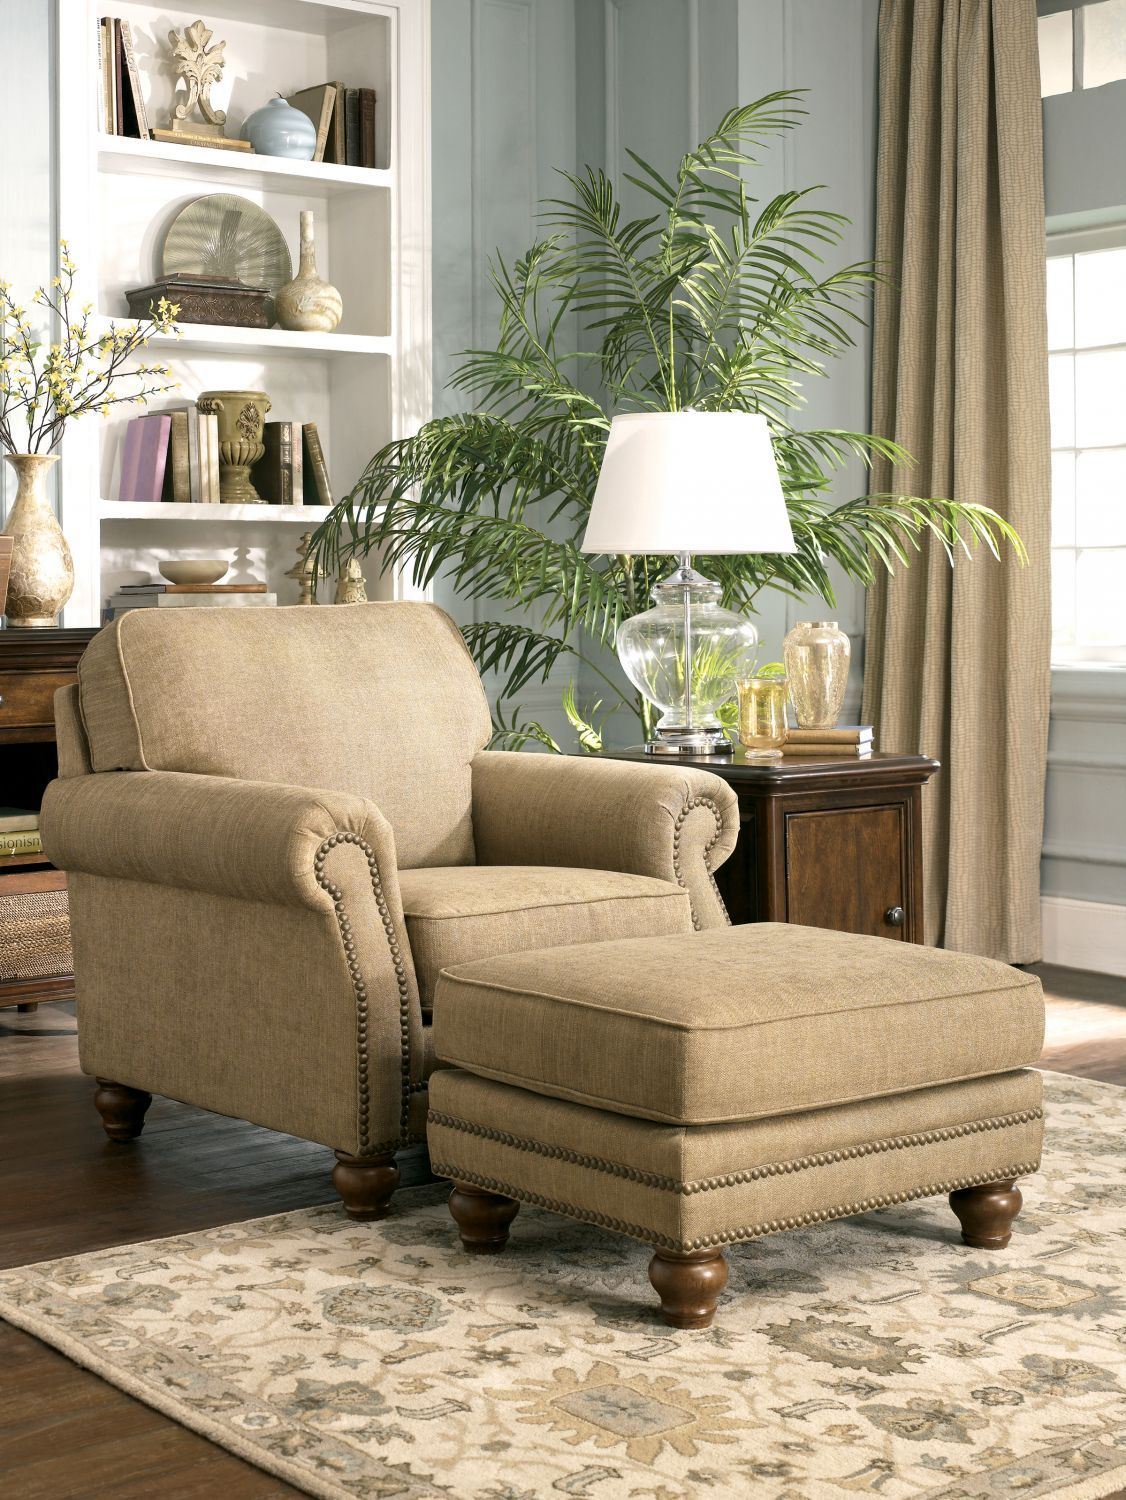 Best 25 Chair and ottoman ideas on Pinterest  Reading